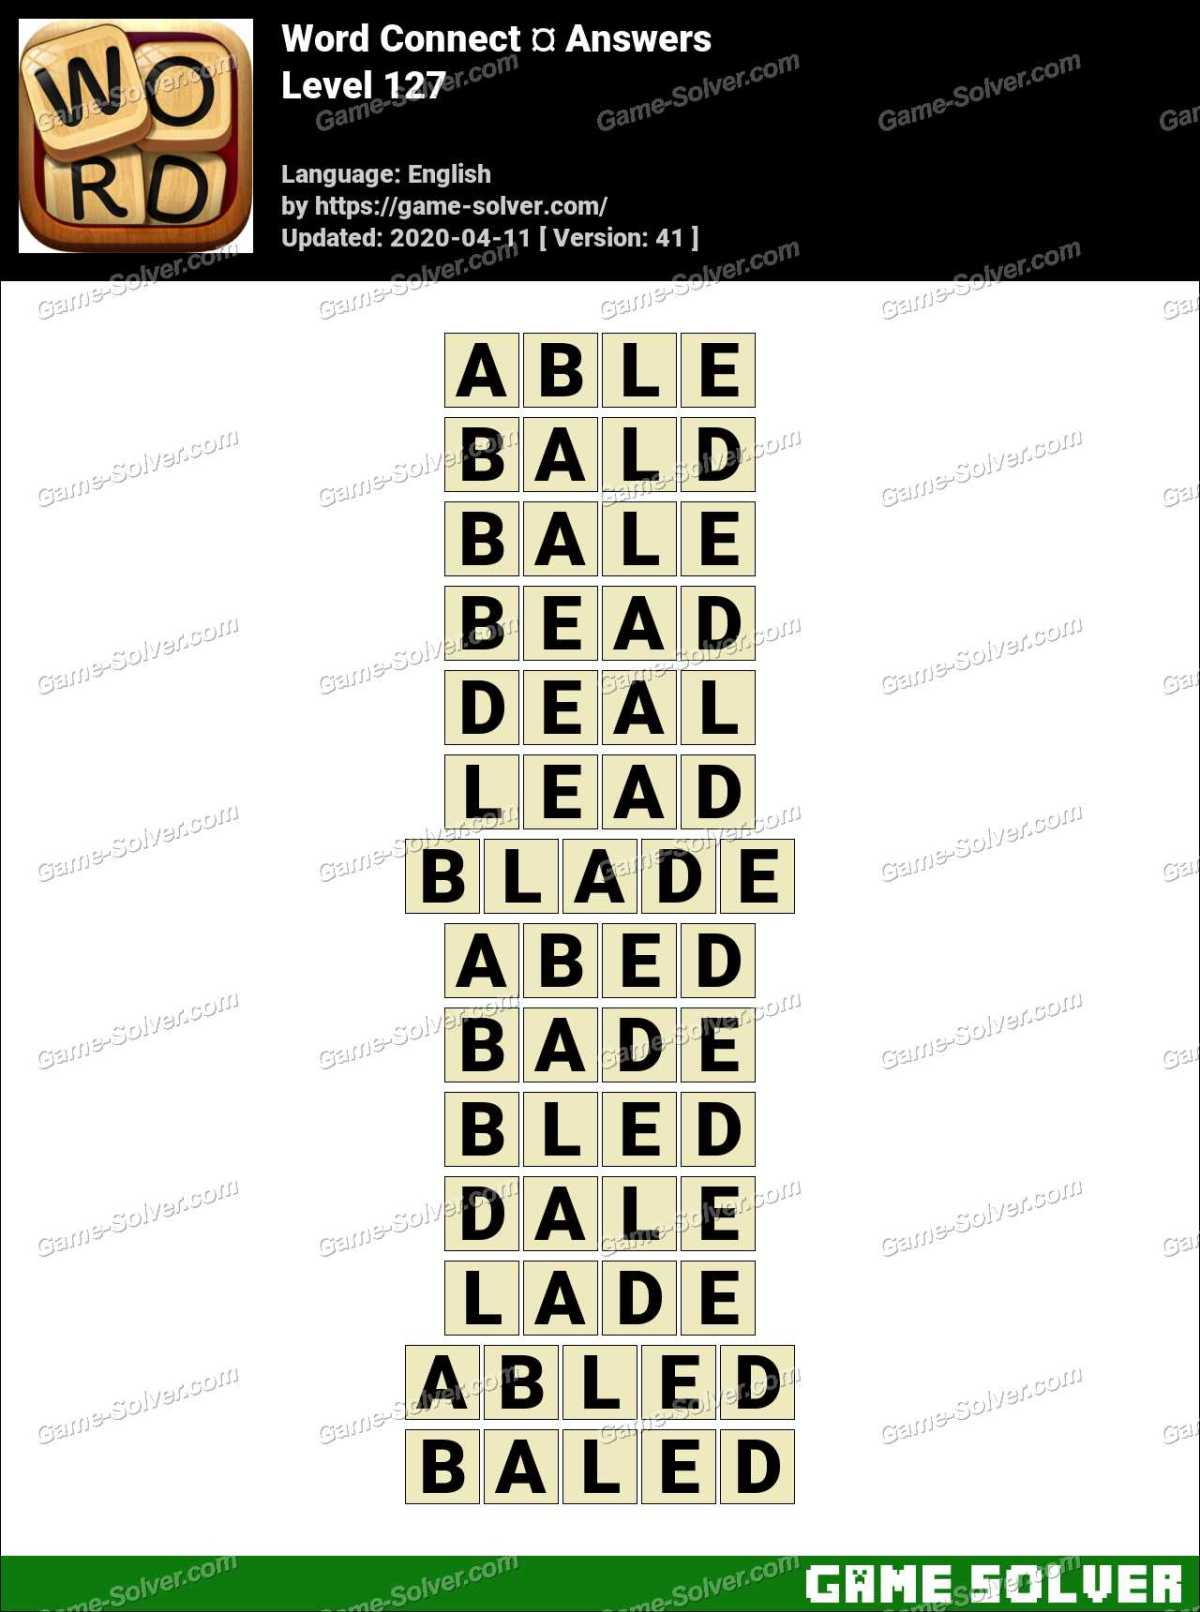 Word Connect Level 127 Answers